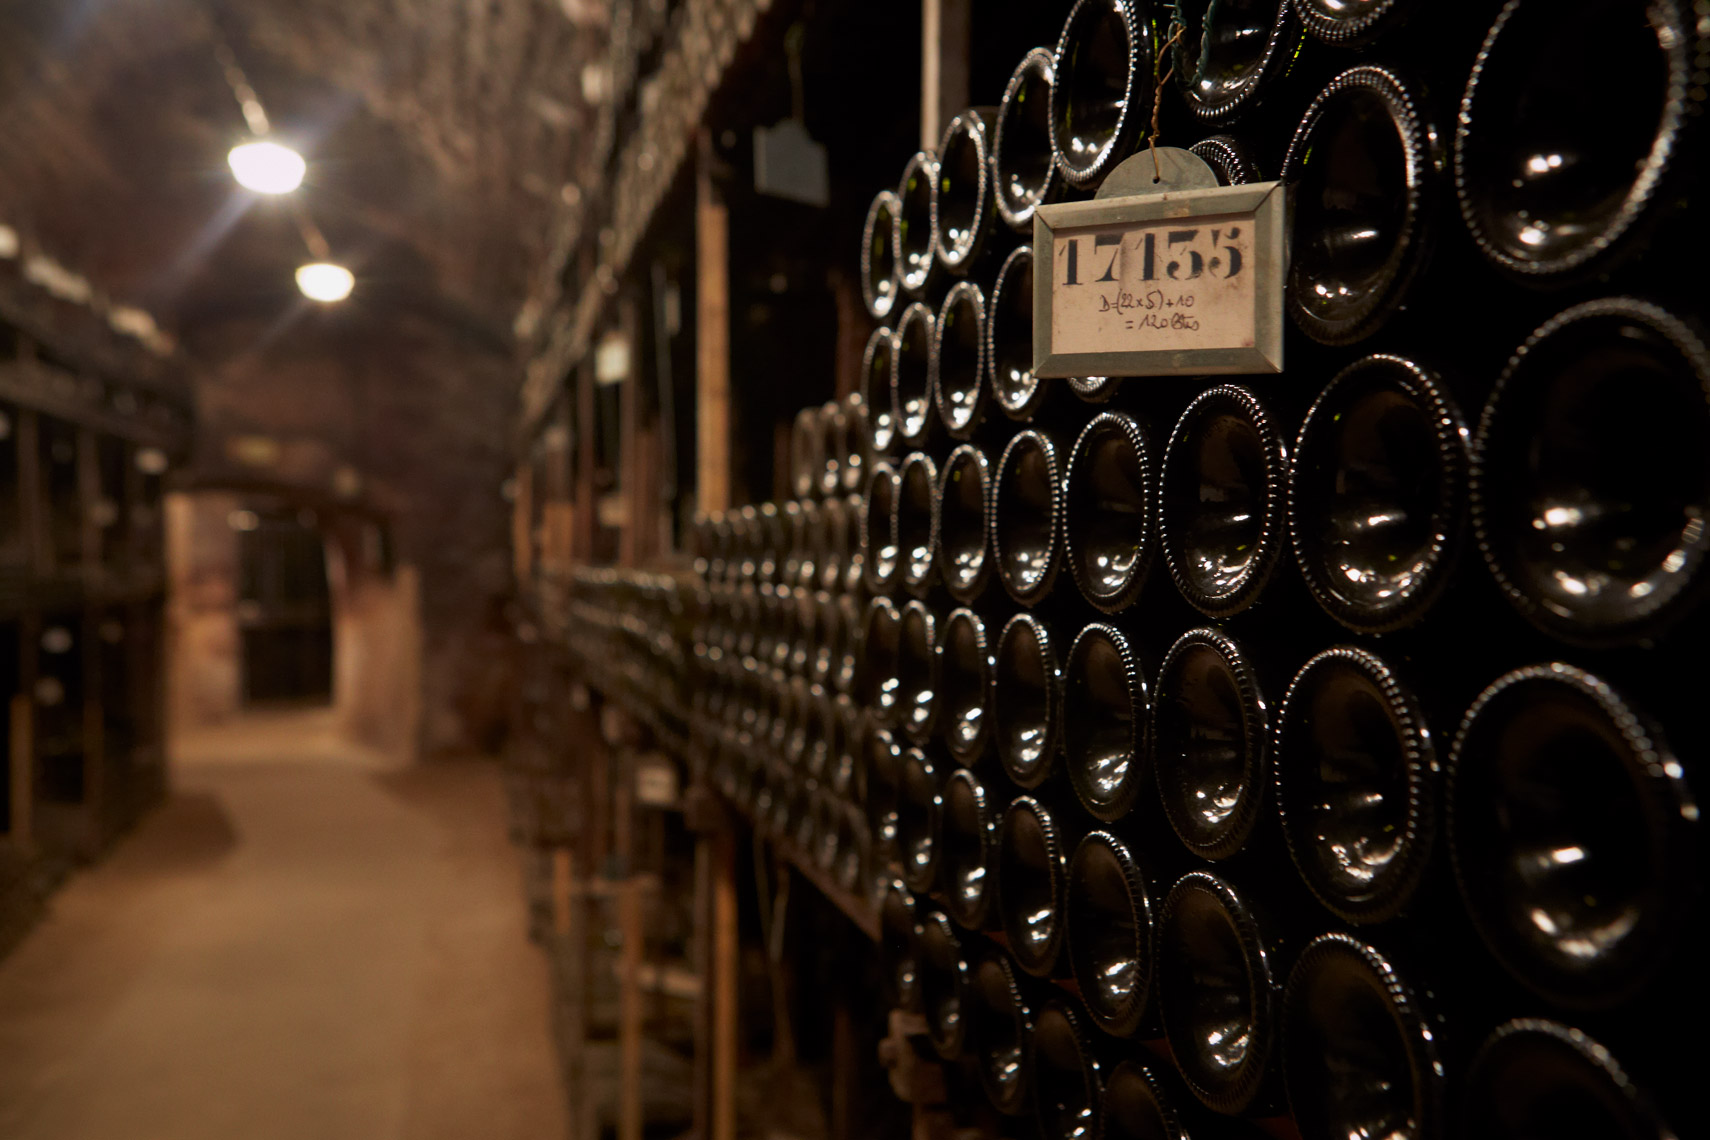 AlanCampbellPhotography. Cellar of Bouchard Pere Fils in the wall of Beaune